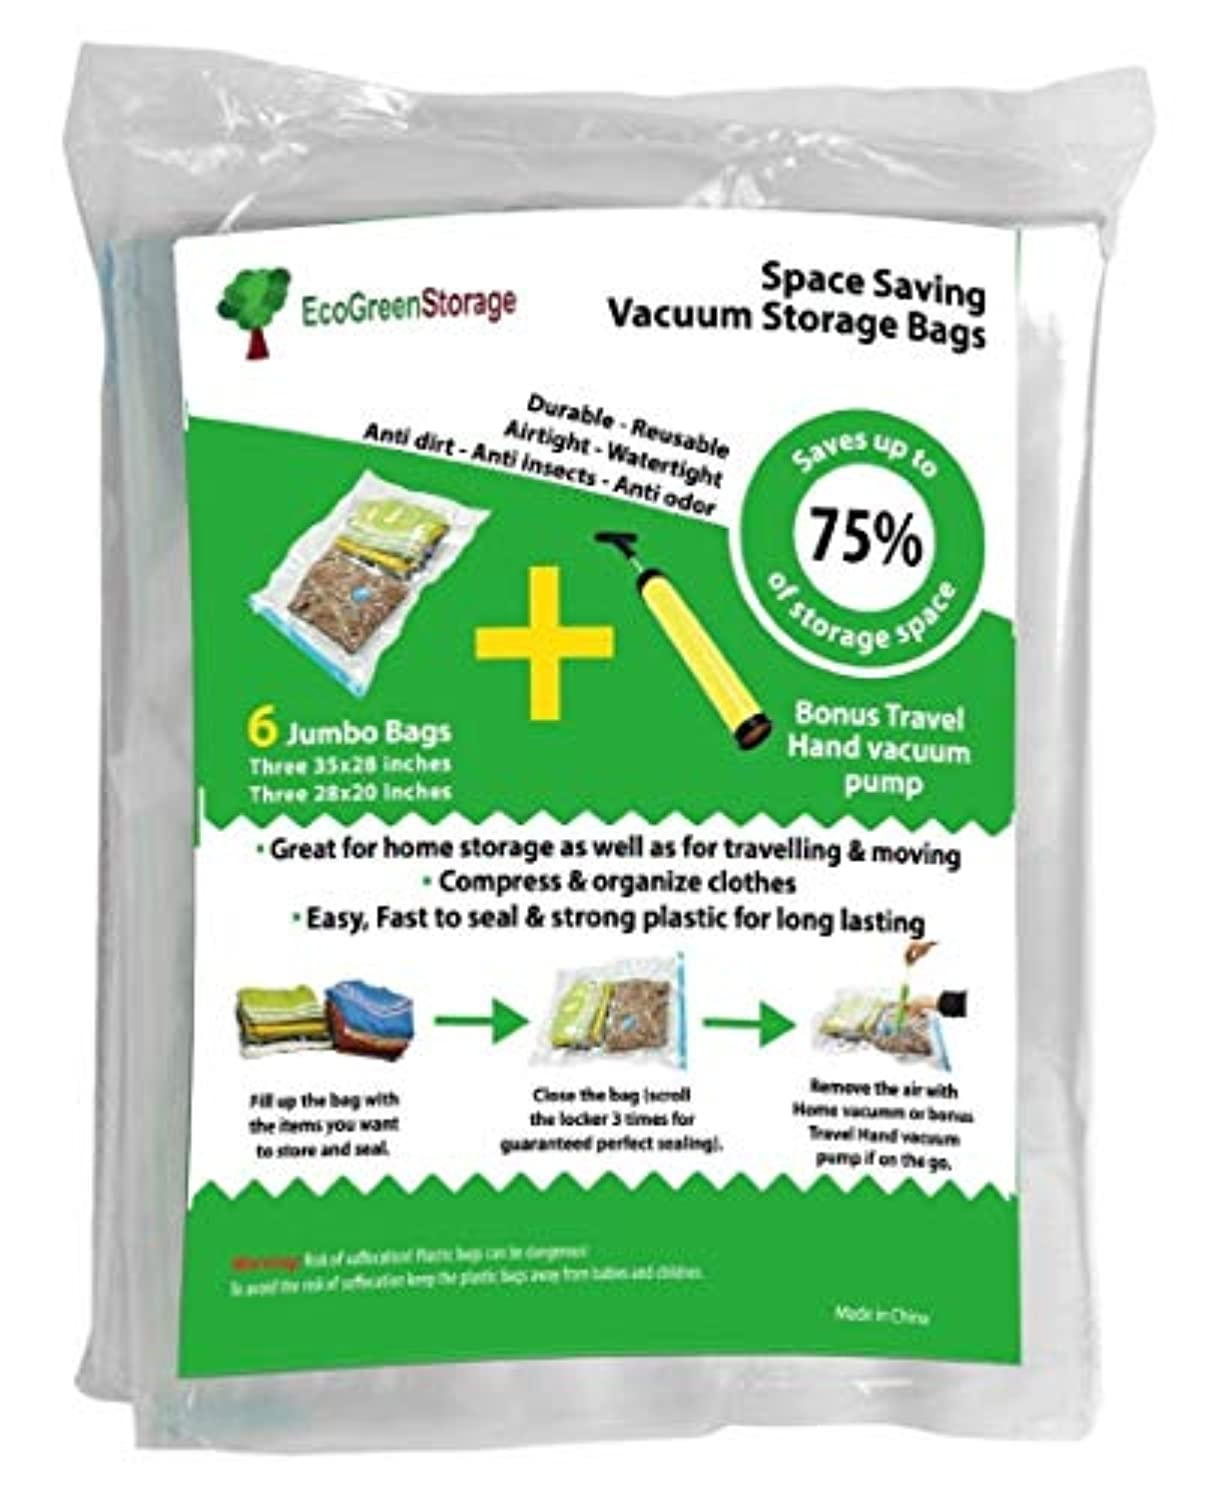 Jumbo Vacuum Space saver Storage bags. [BONUS] Free travel Vacuum hand pump. Jumbo size, excellent for long term storage or saving extra space while travelling. Pack of 6 By Ecogreen Storage